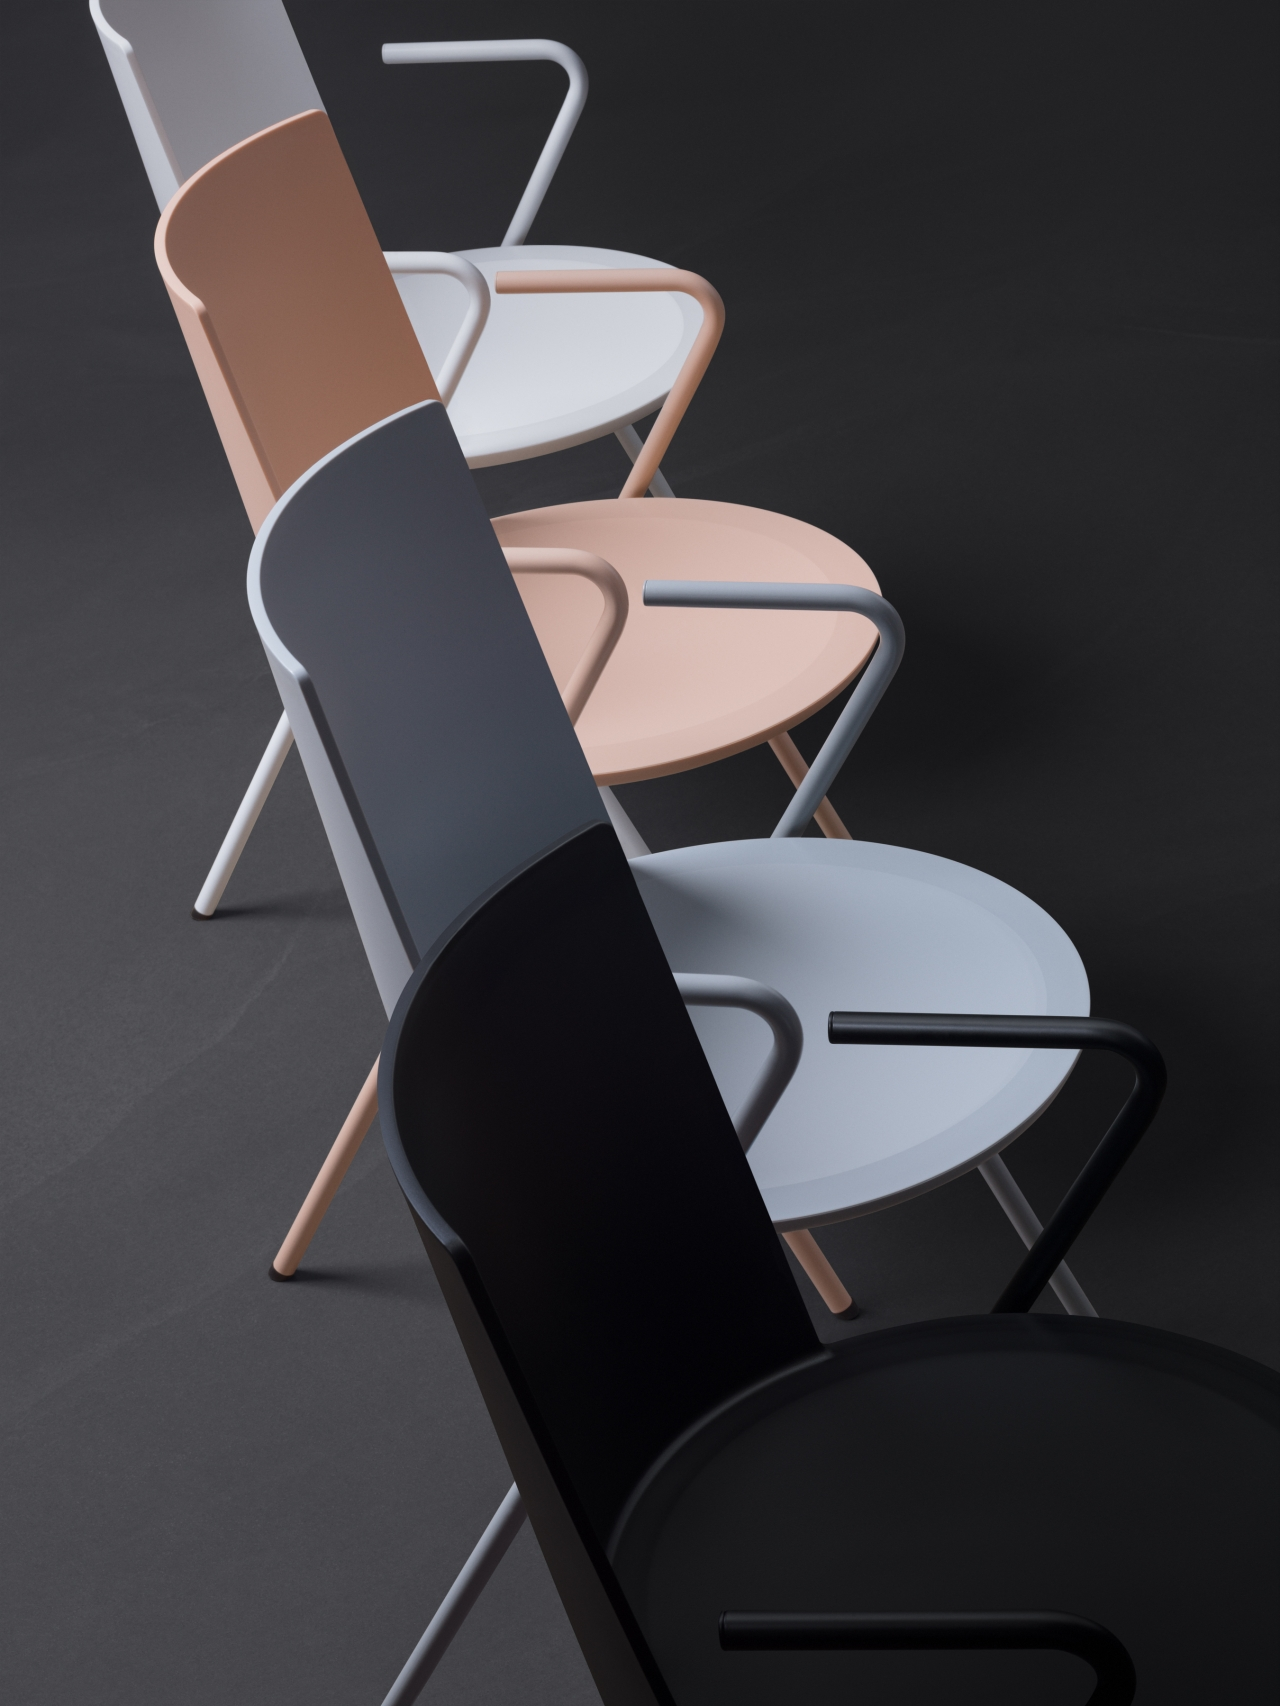 Acme Chair by Geckler Michels